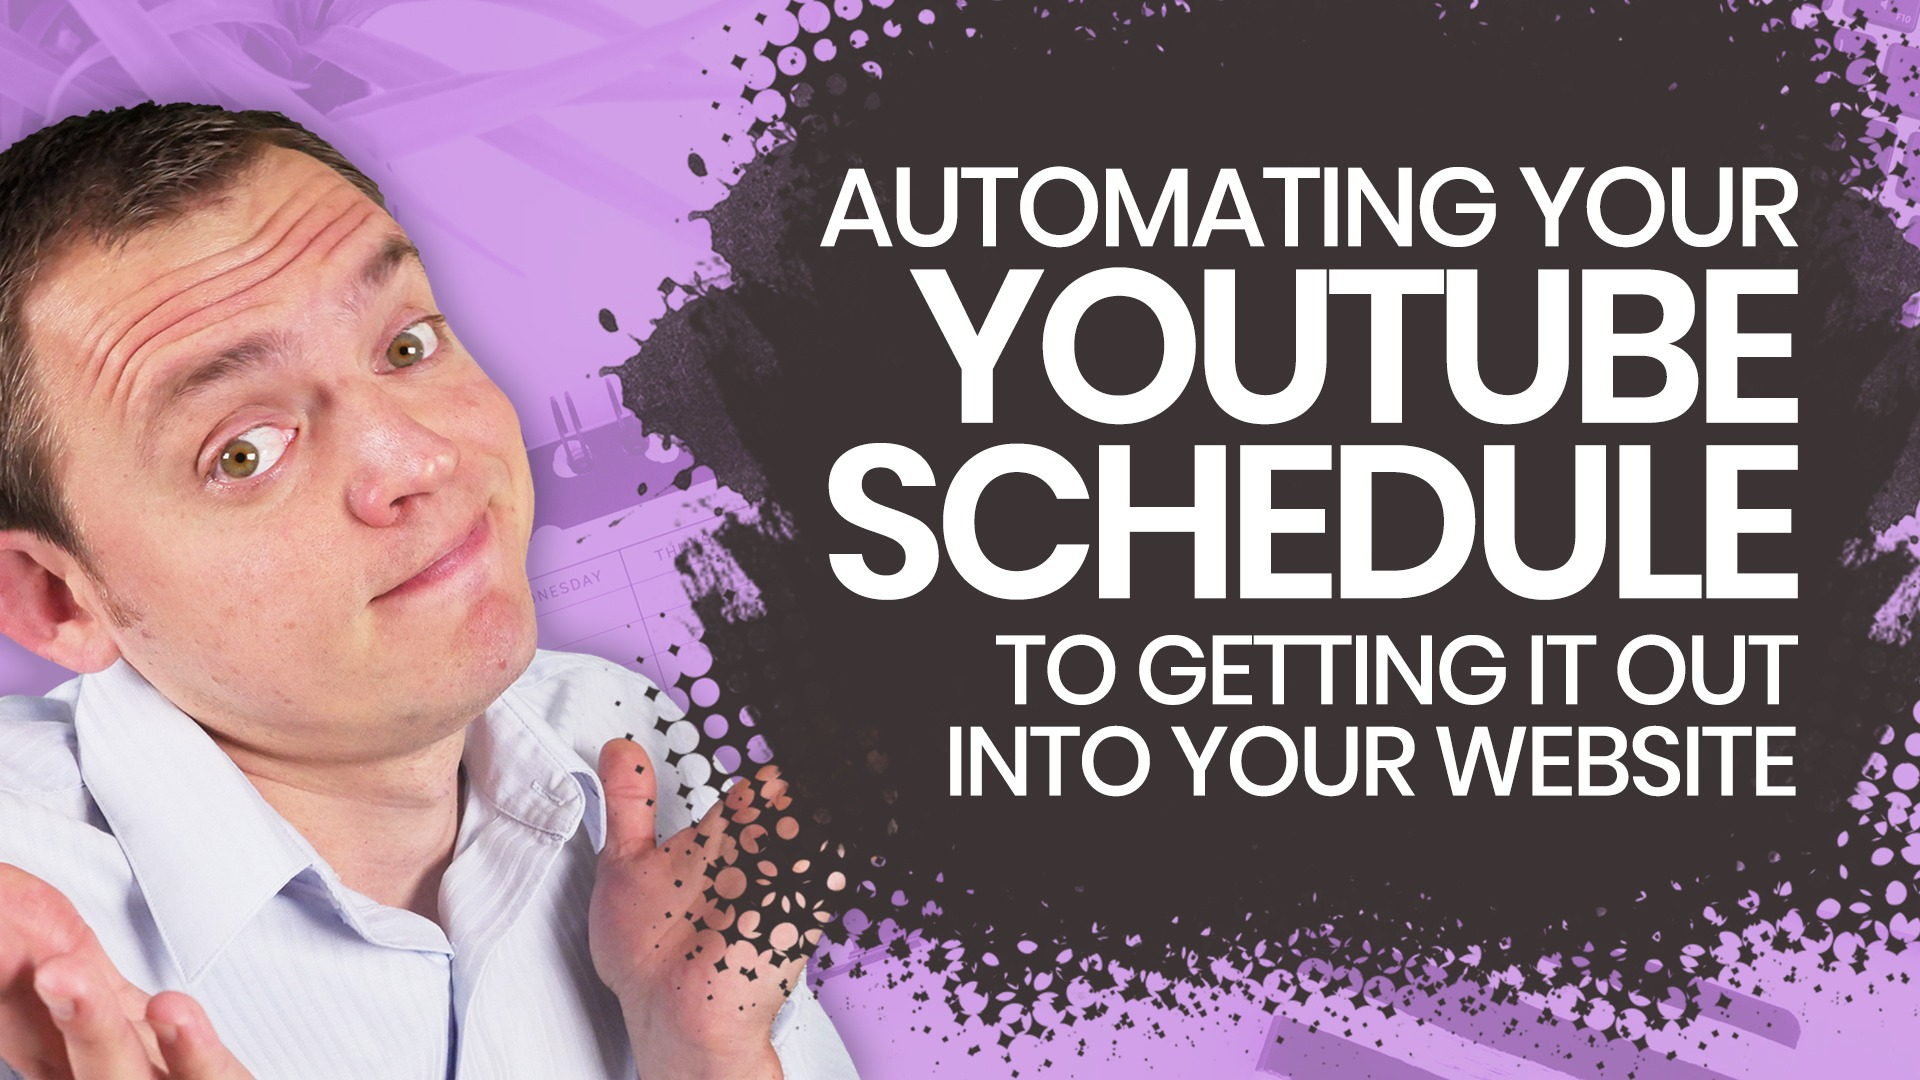 Automating Your YouTube Schedule to Getting it Into Your Website